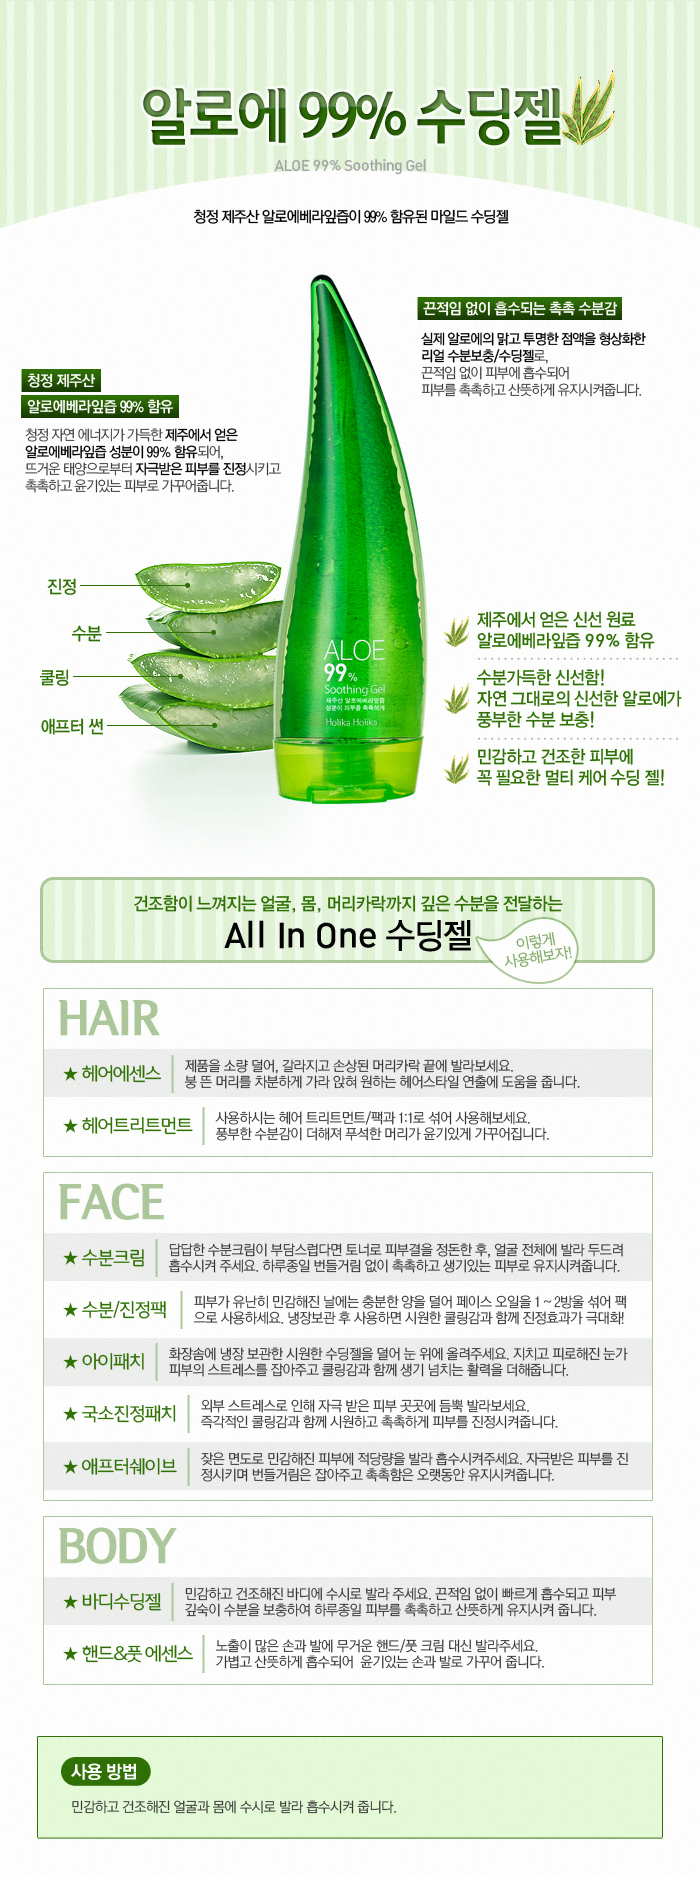 Aloe 99% Soothing Gel 8.45oz(250ml)